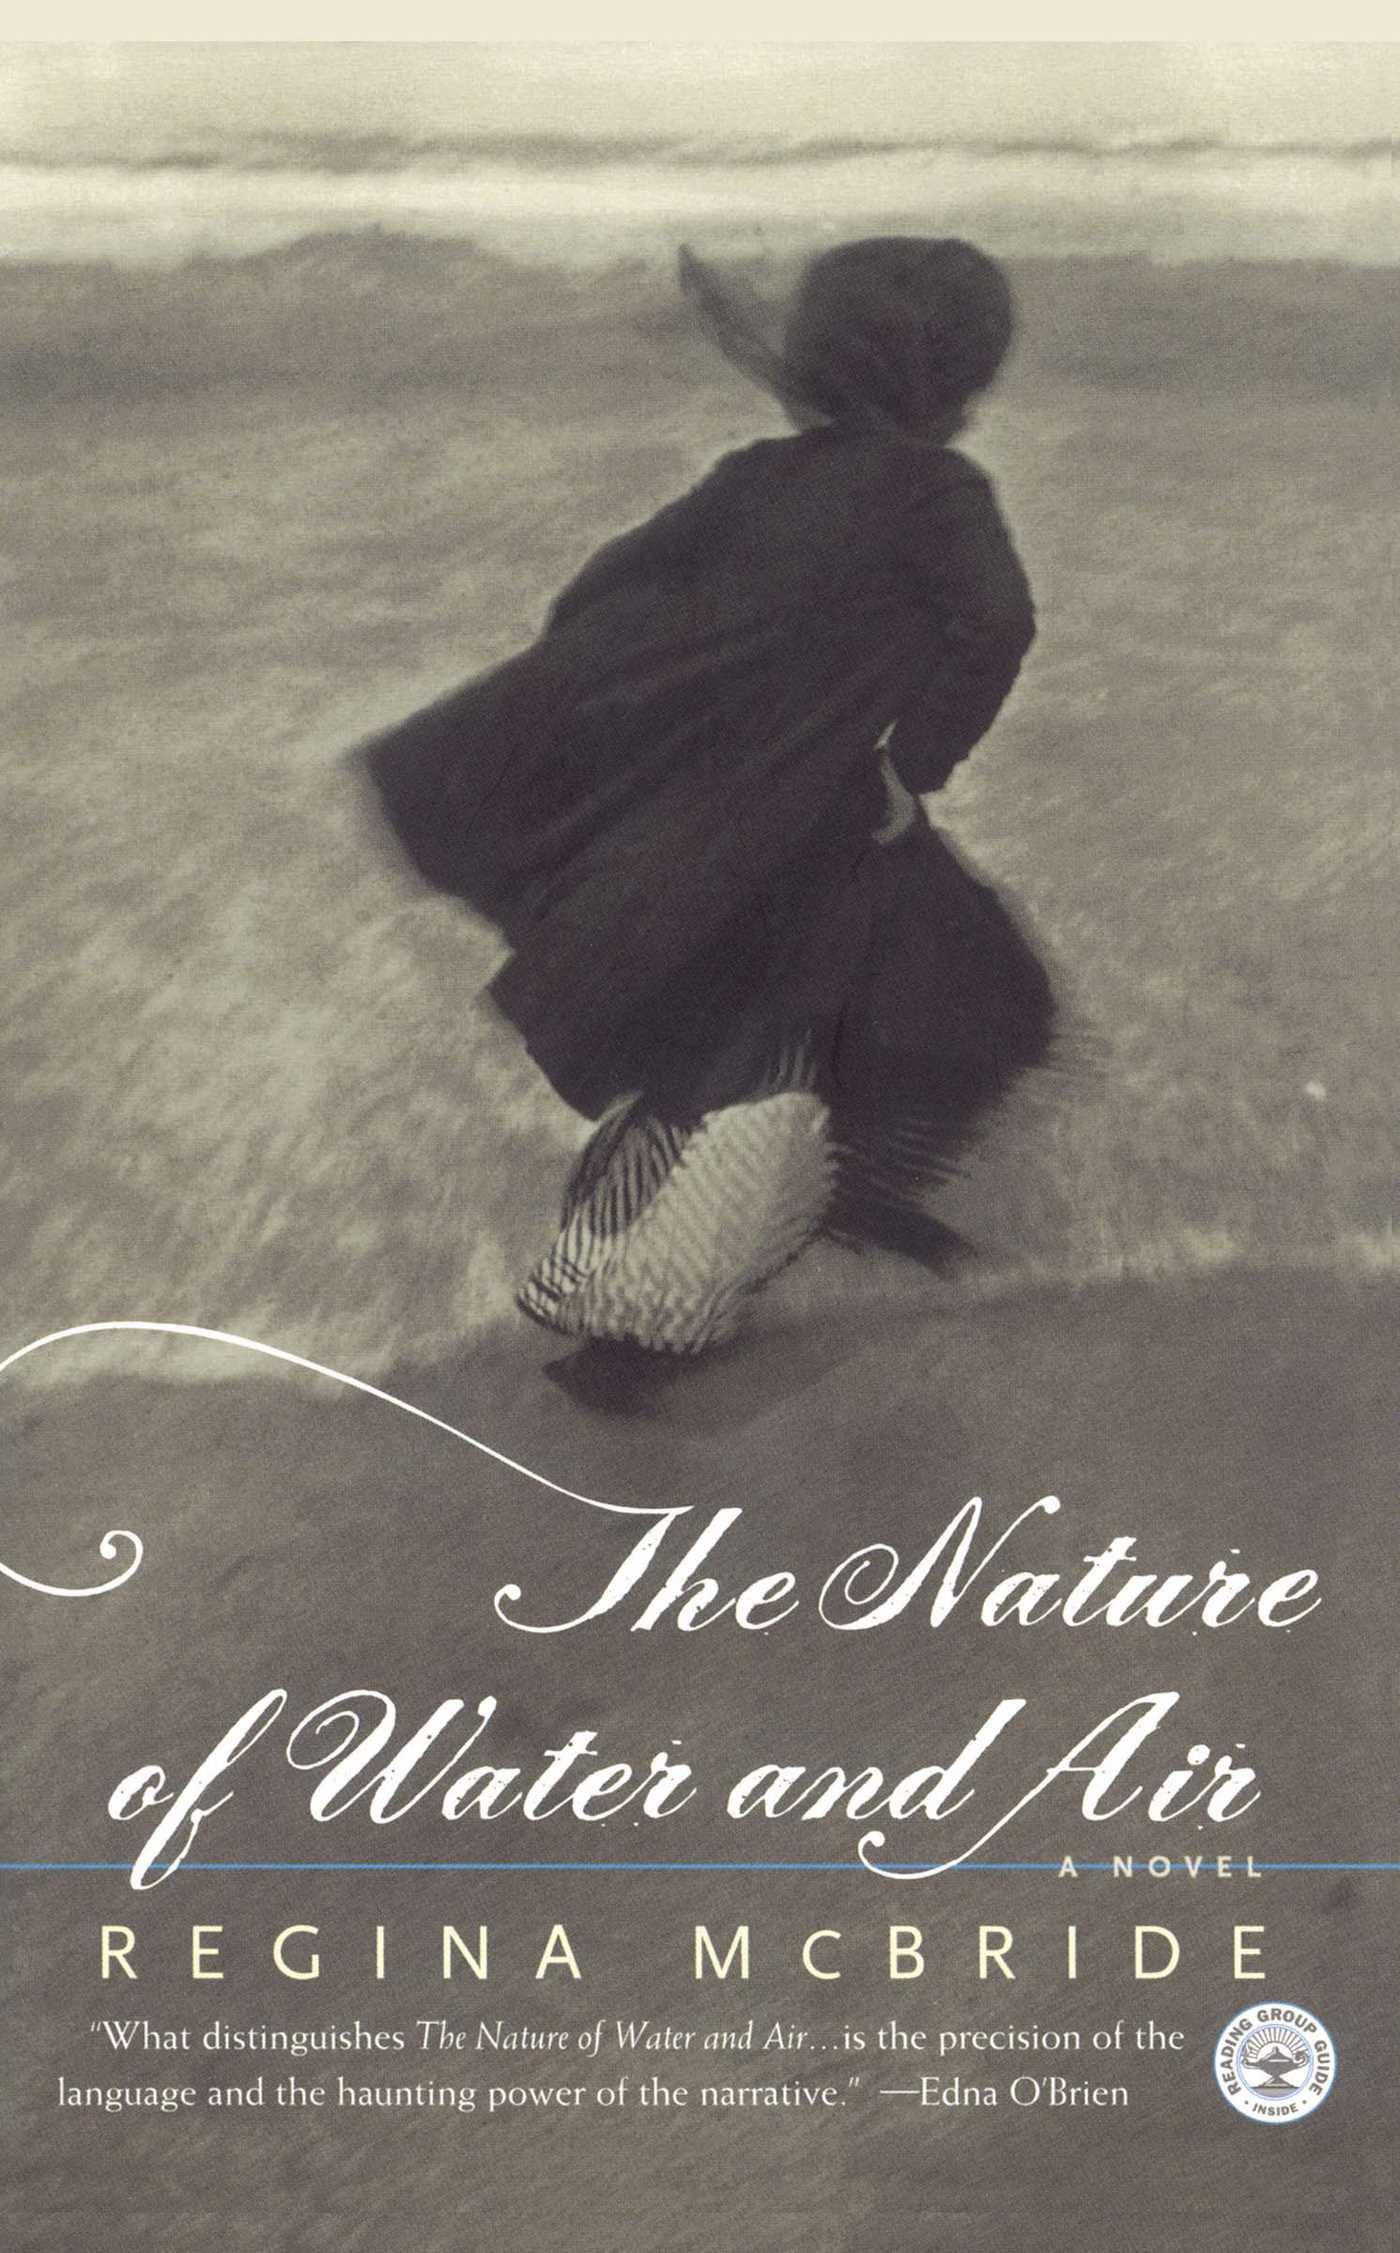 The nature of water and air 9780743203234 hr